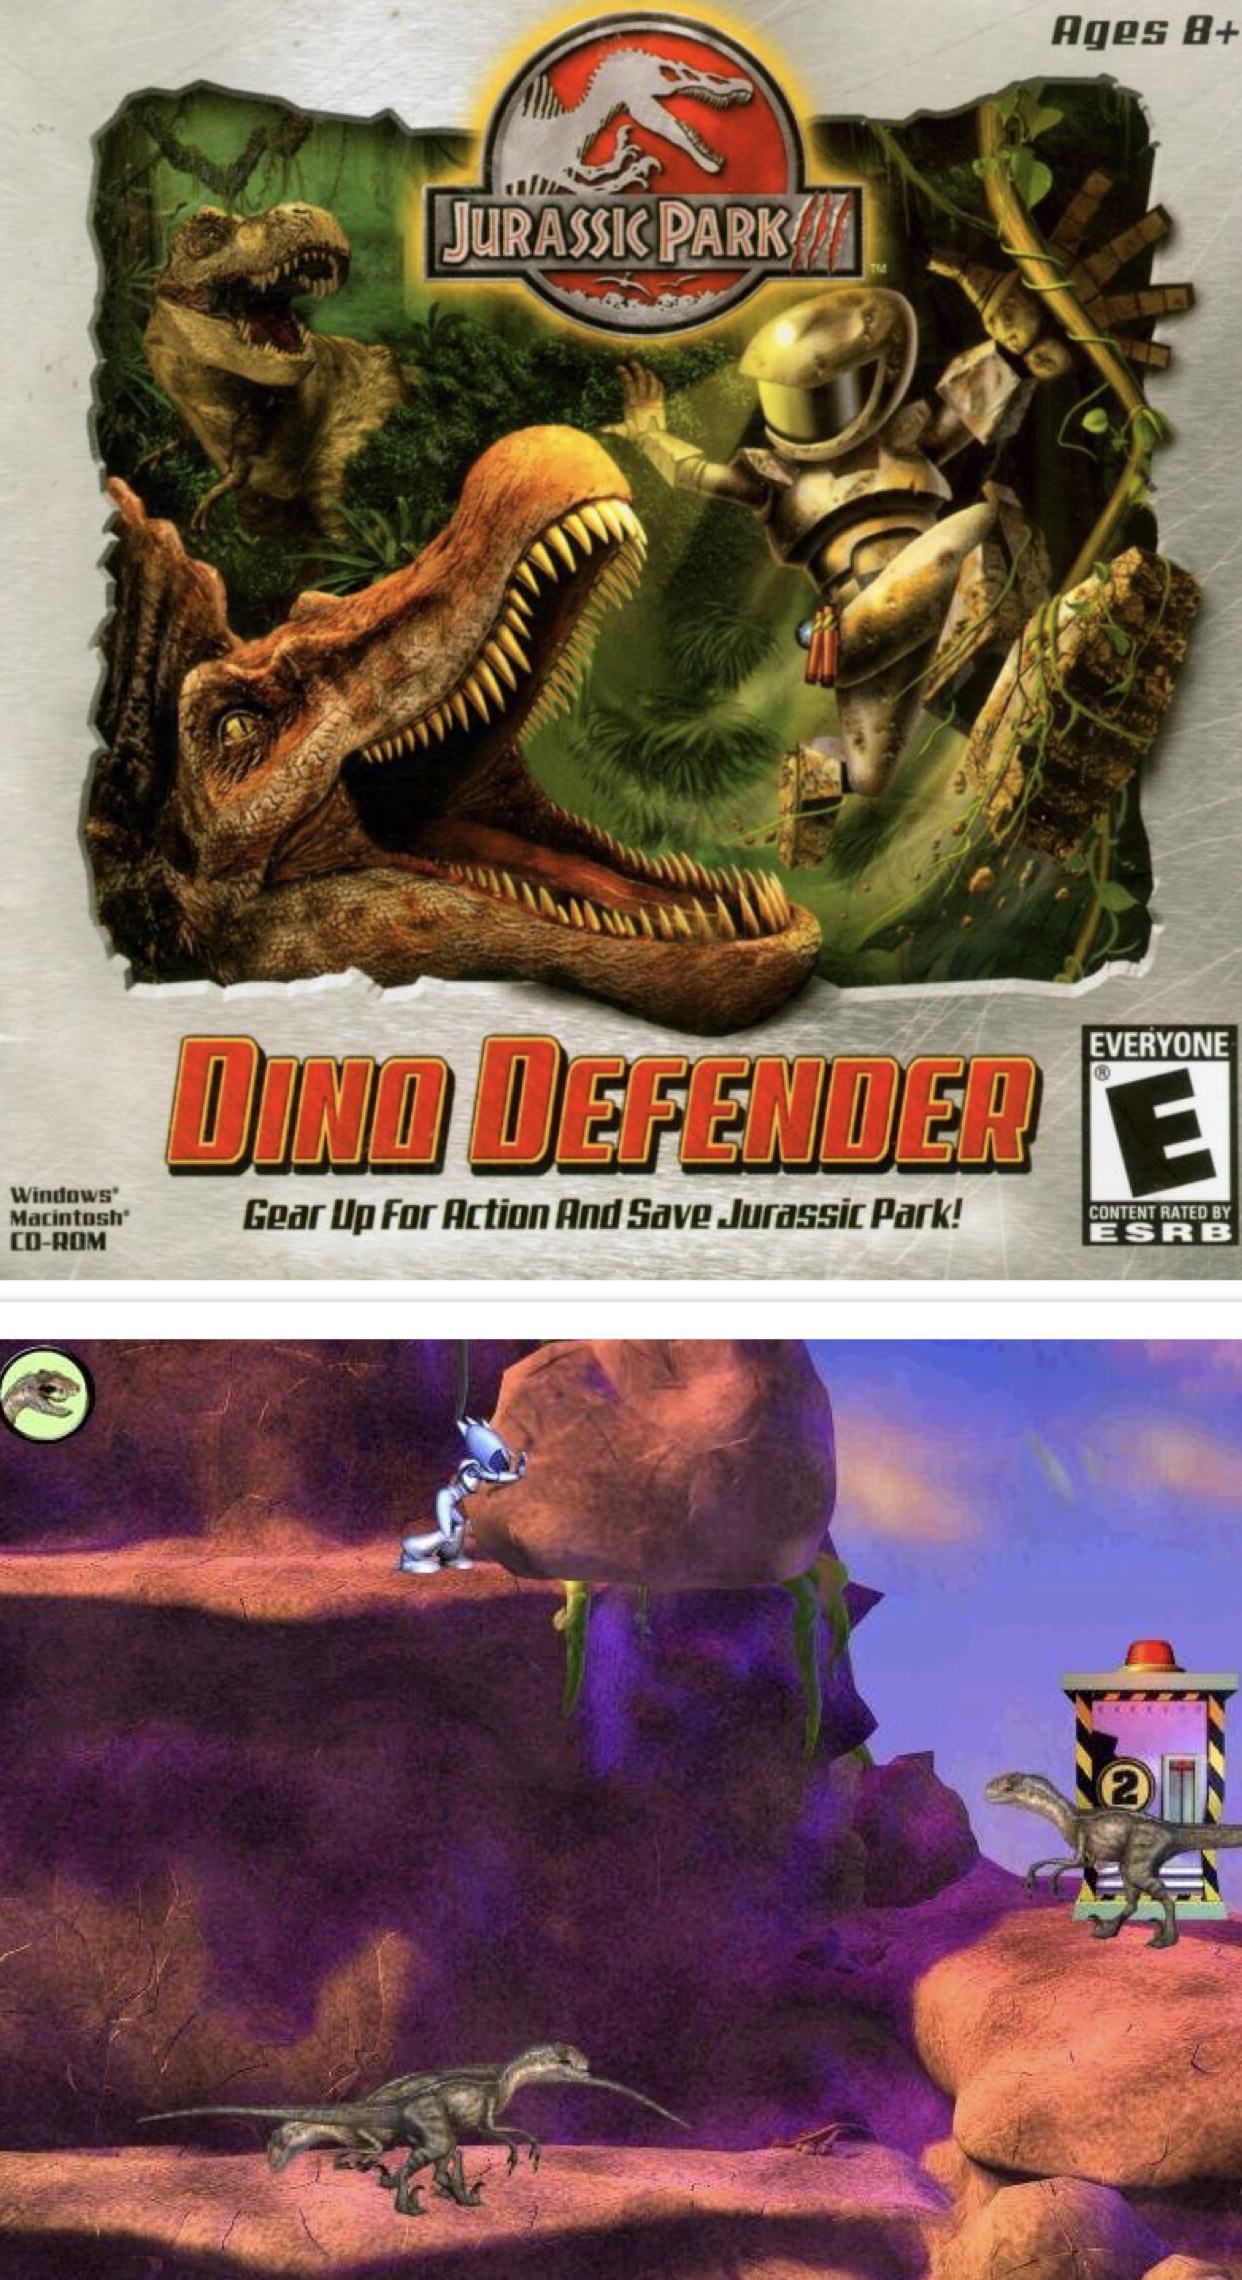 Jurassic Park III Dino Defender one of the worst puter games I